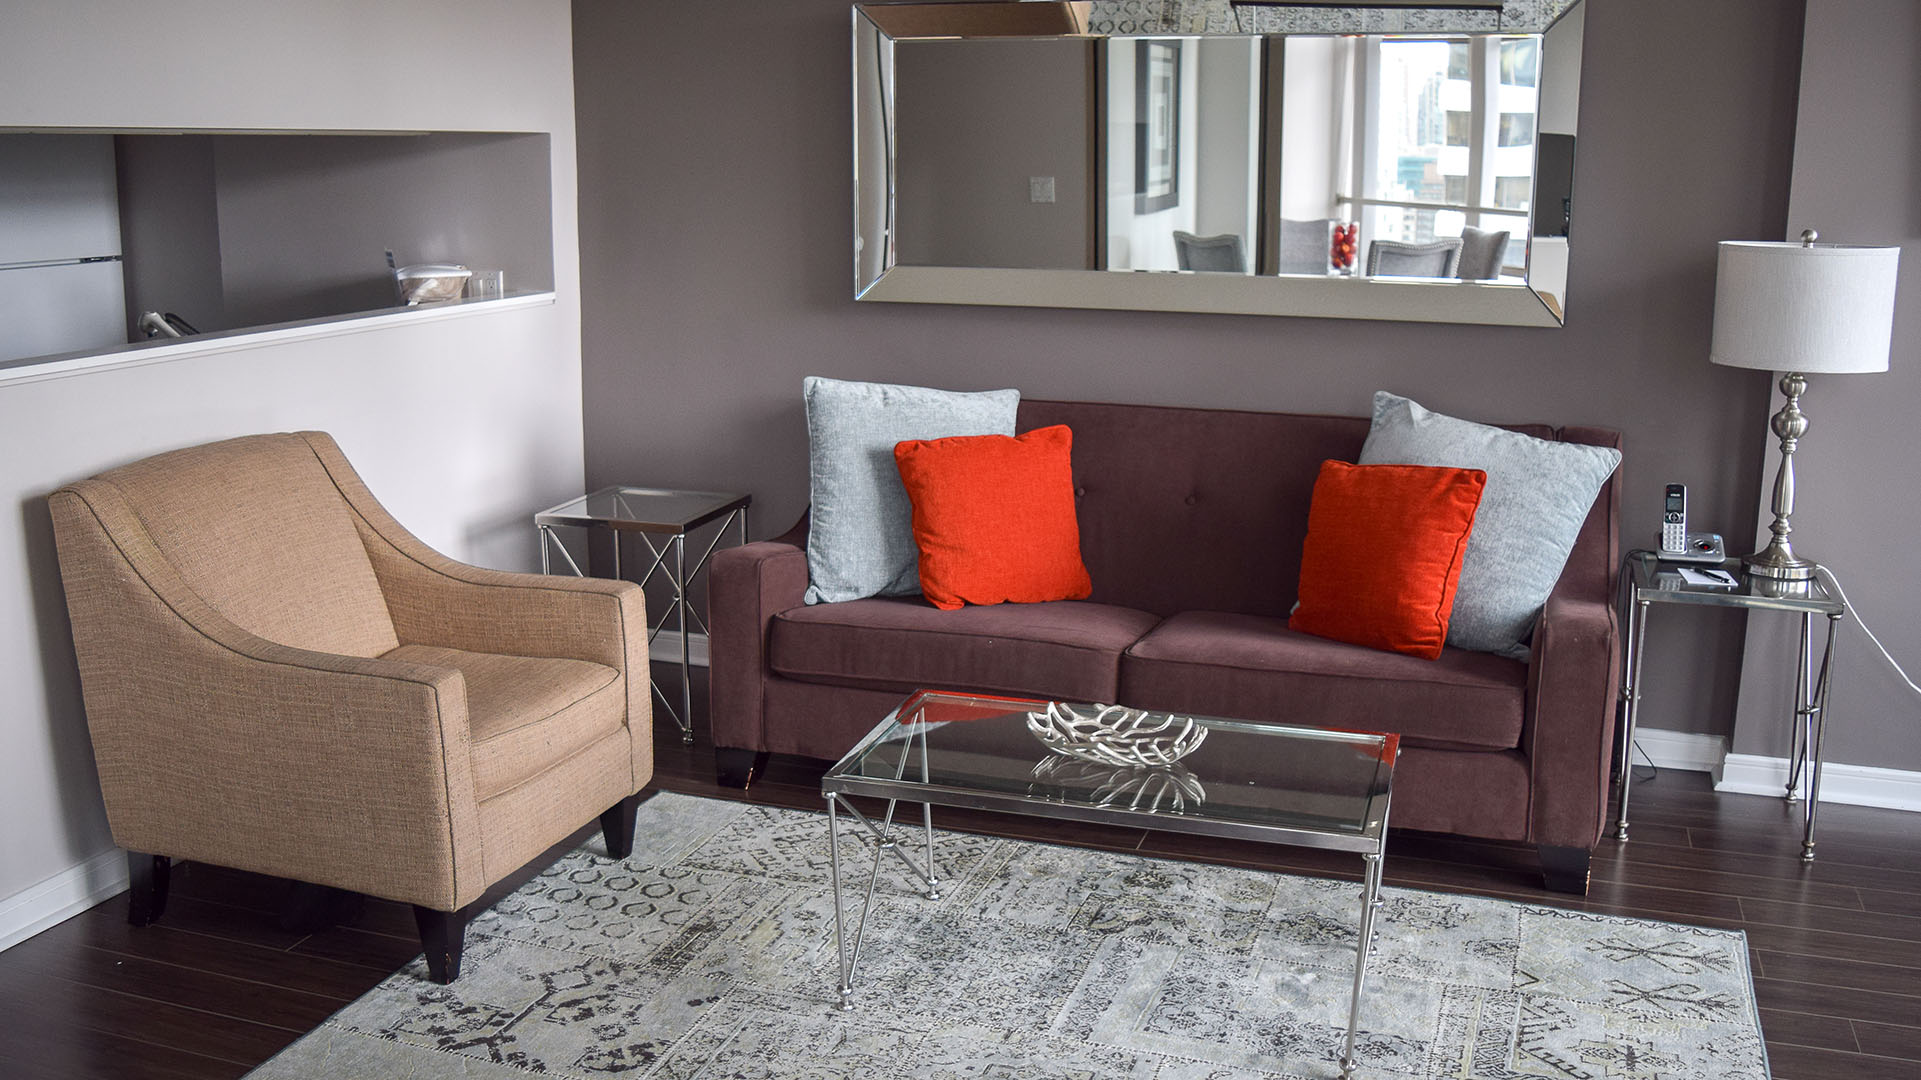 Photo of fully furnished apartment #1906 at The Palisades, 1200 Alberni Street, Vancouver, BC